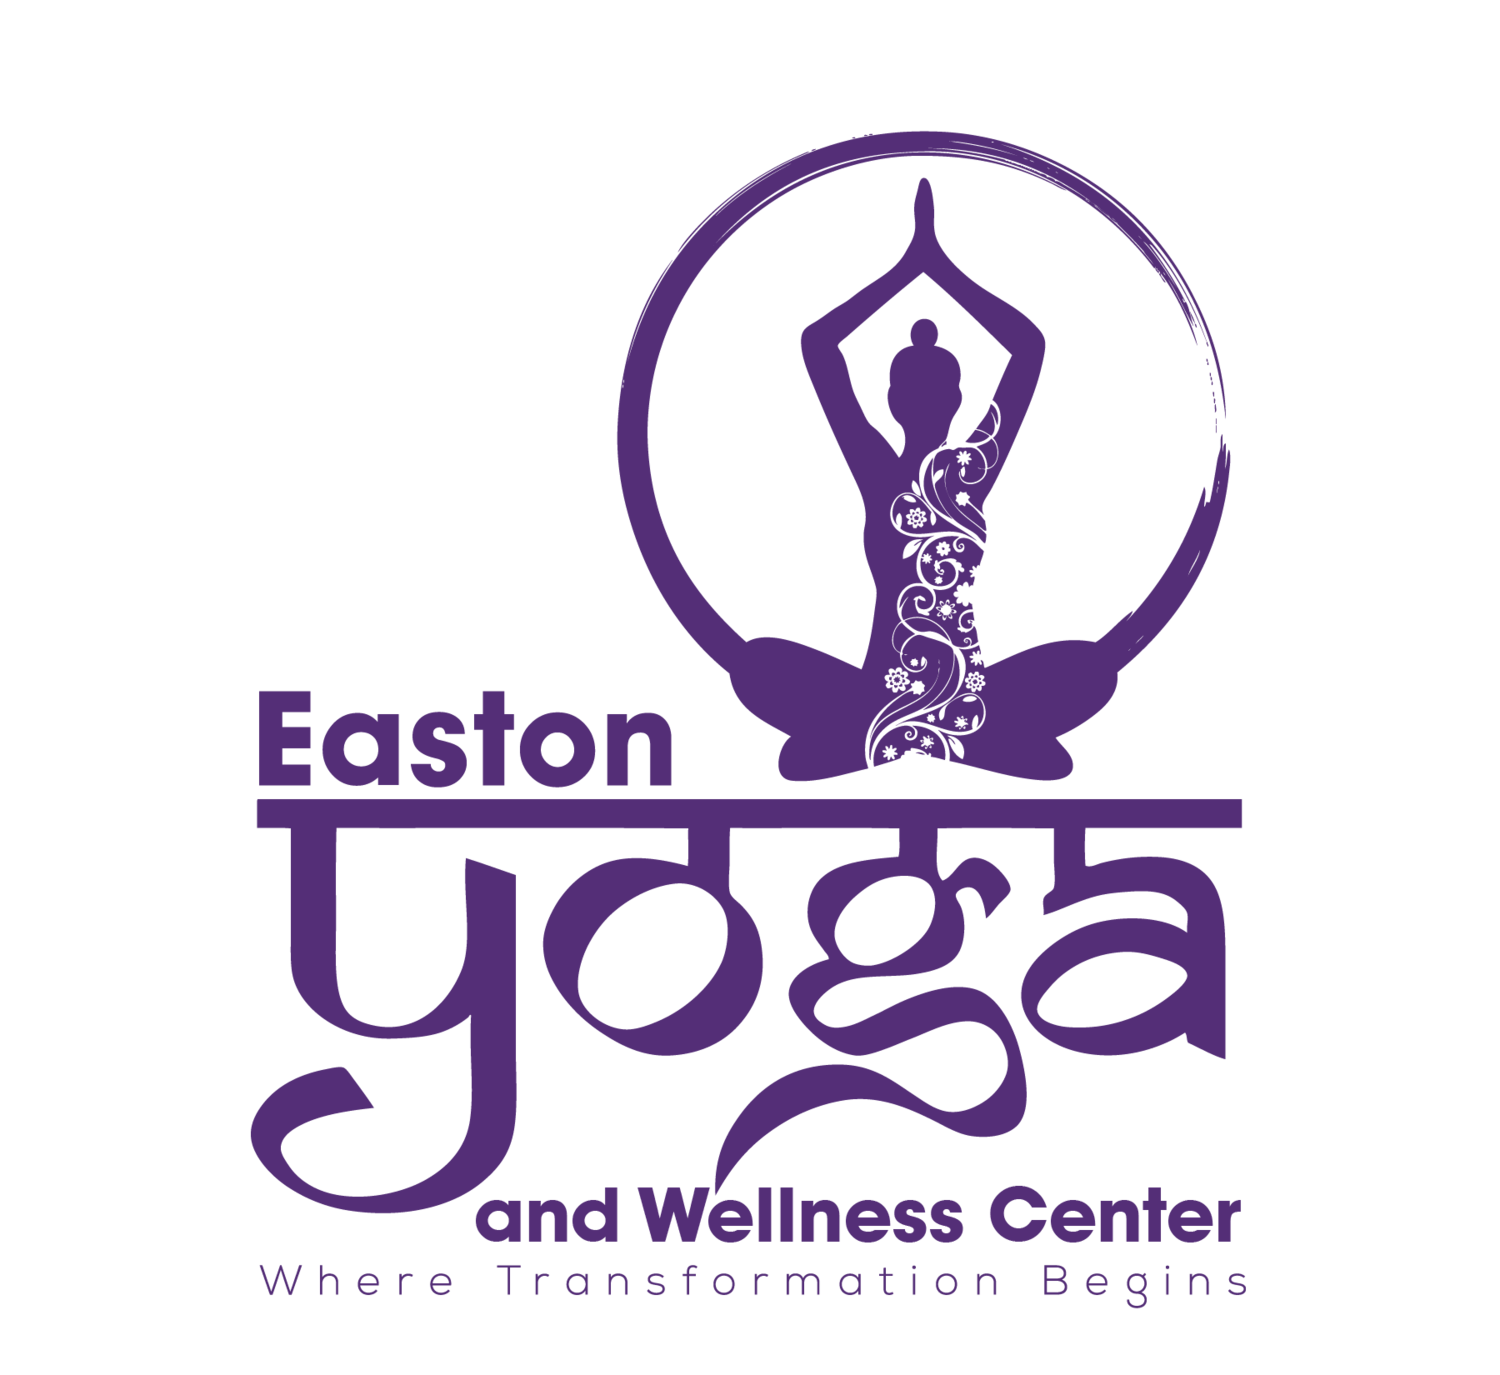 Easton Yoga Center